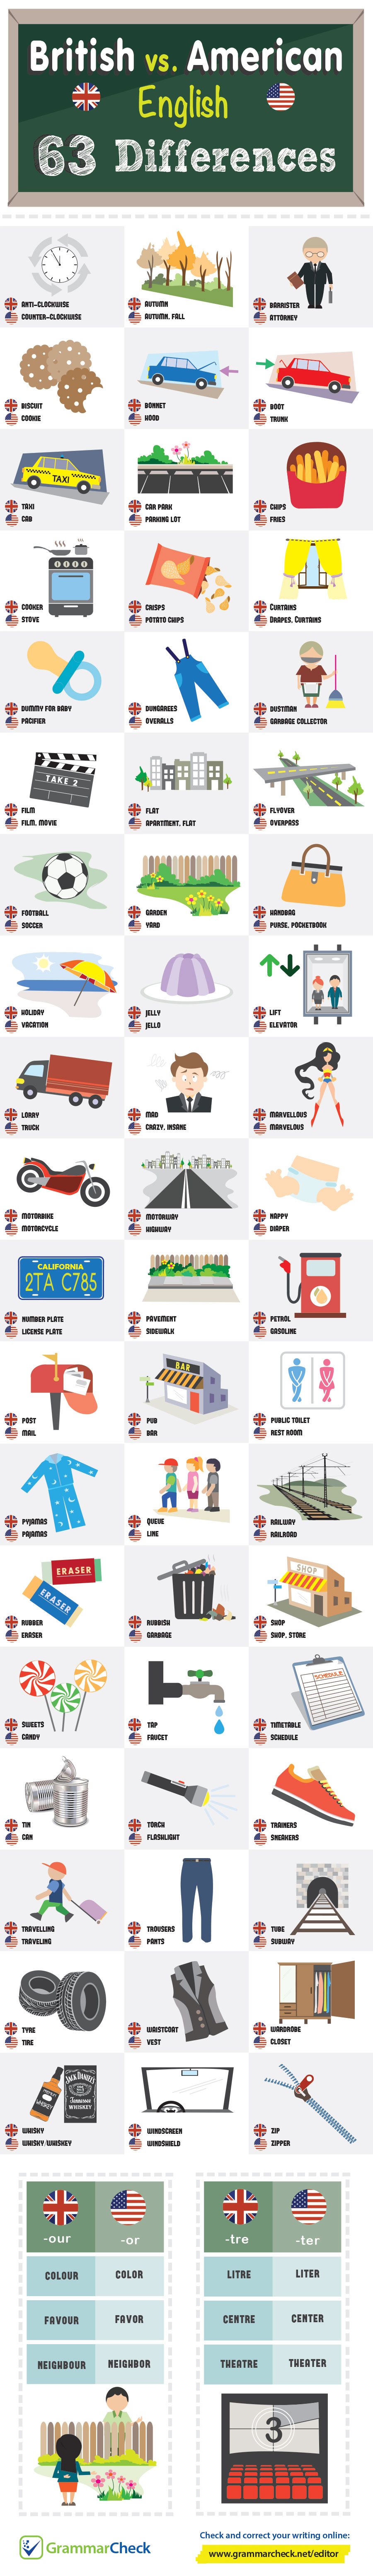 british-vs-american-english-infographic.